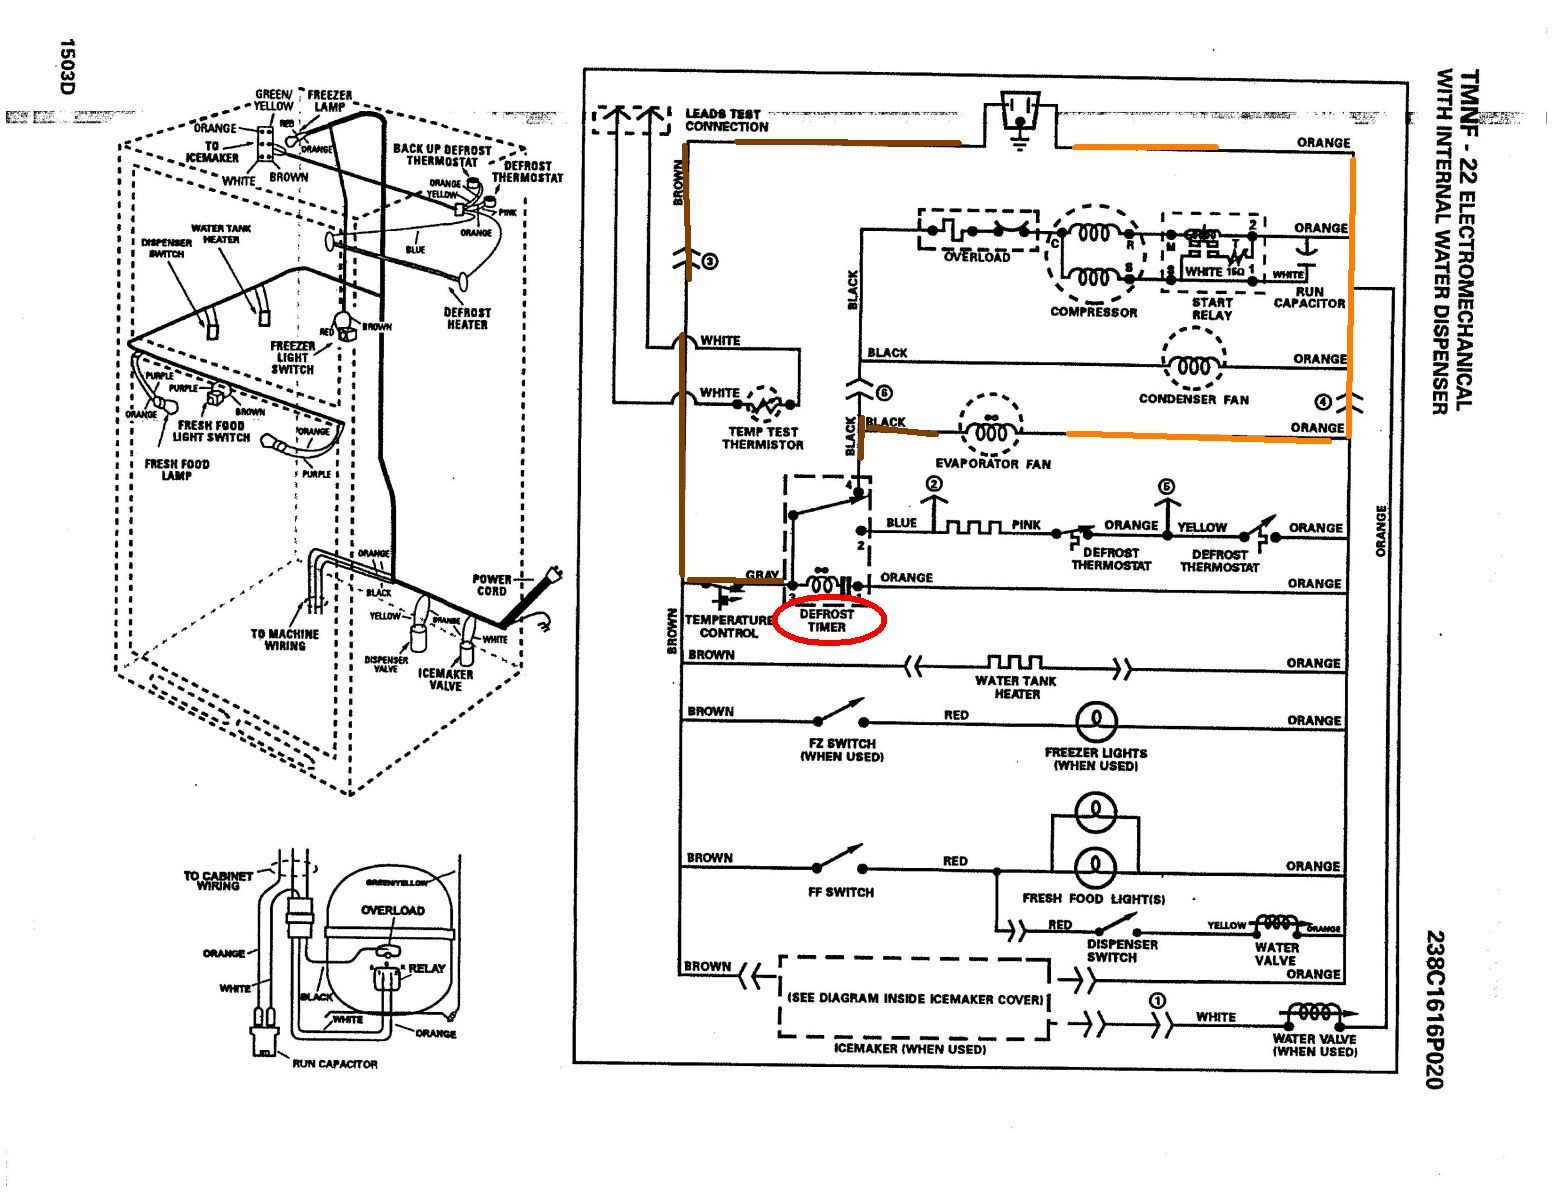 Ge Dryer Wiring Diagram | Wiring Liry on